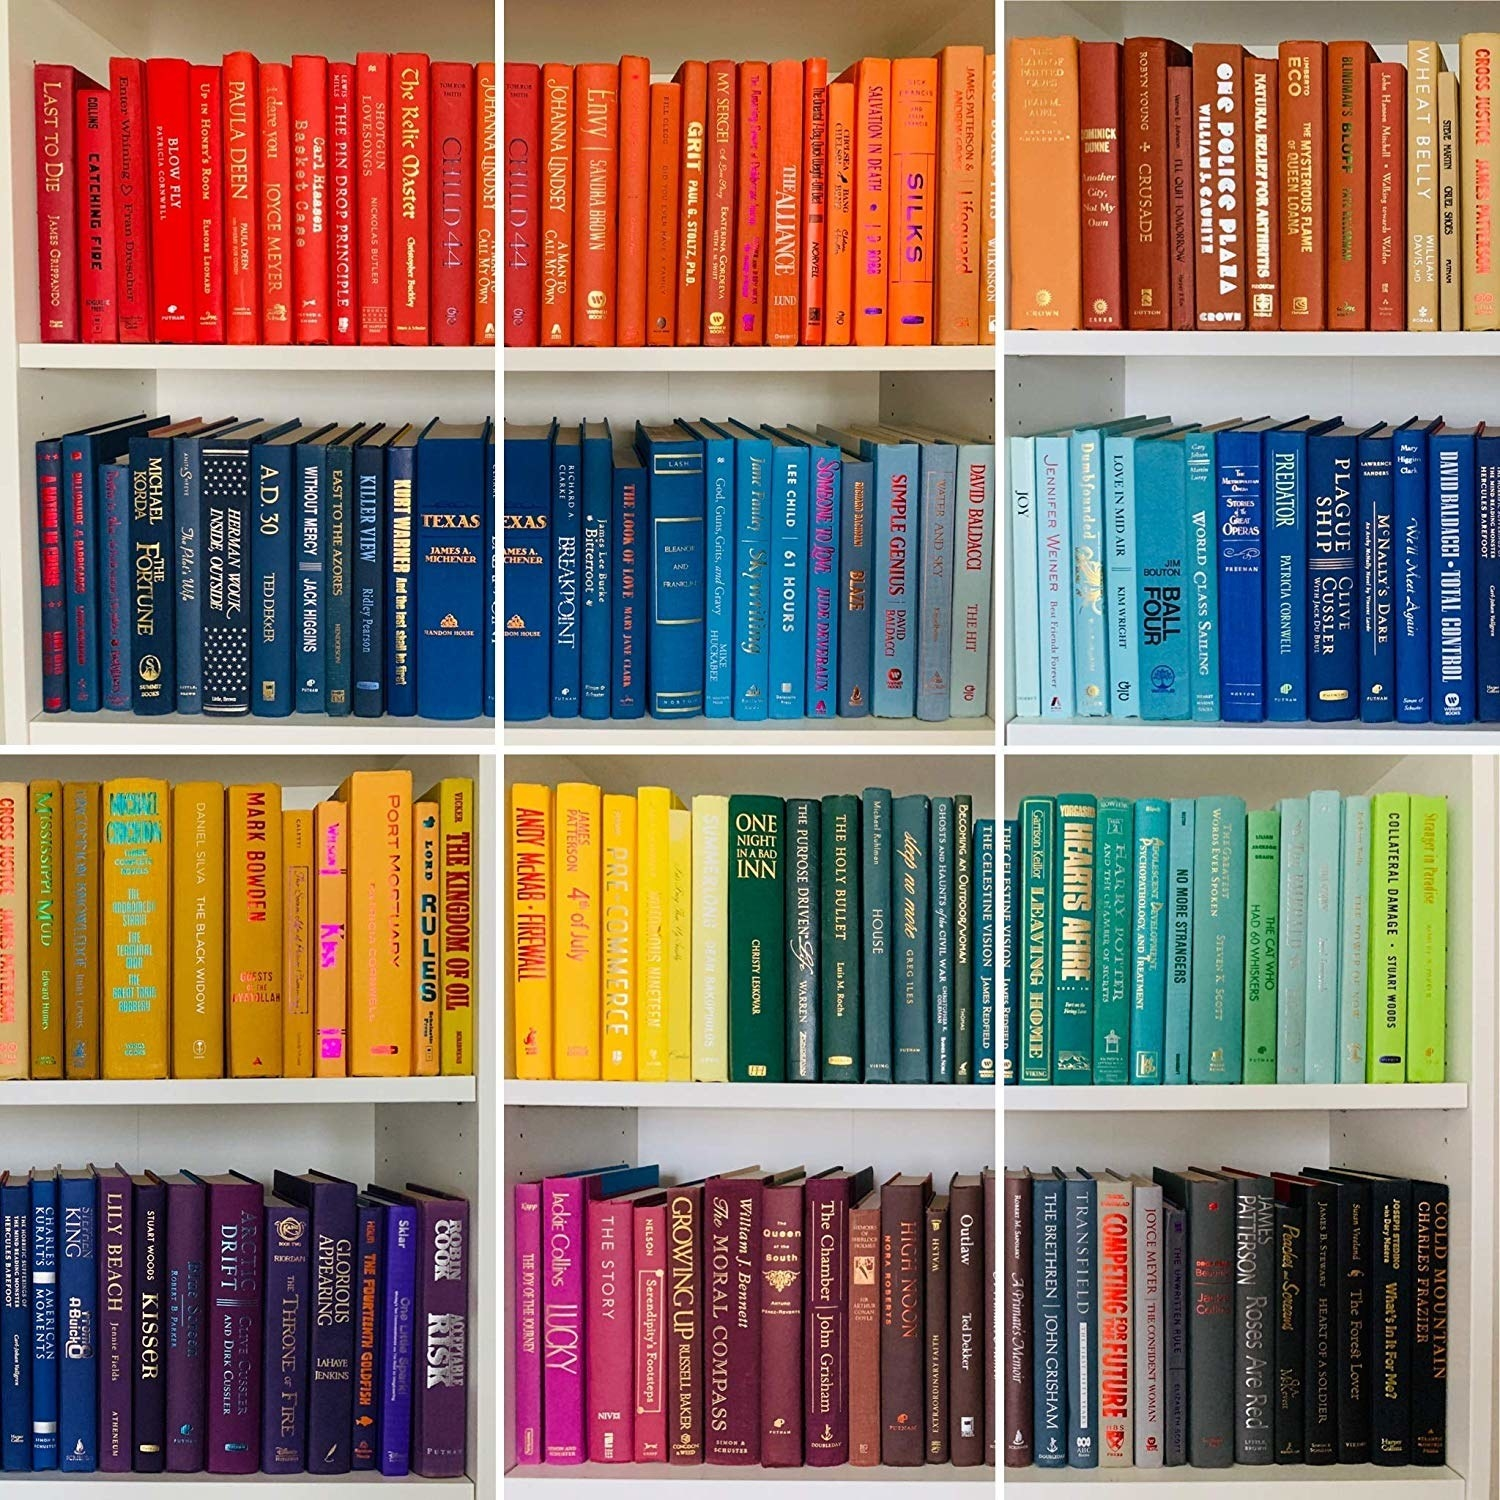 A bookshelf filled with color-coordinated books